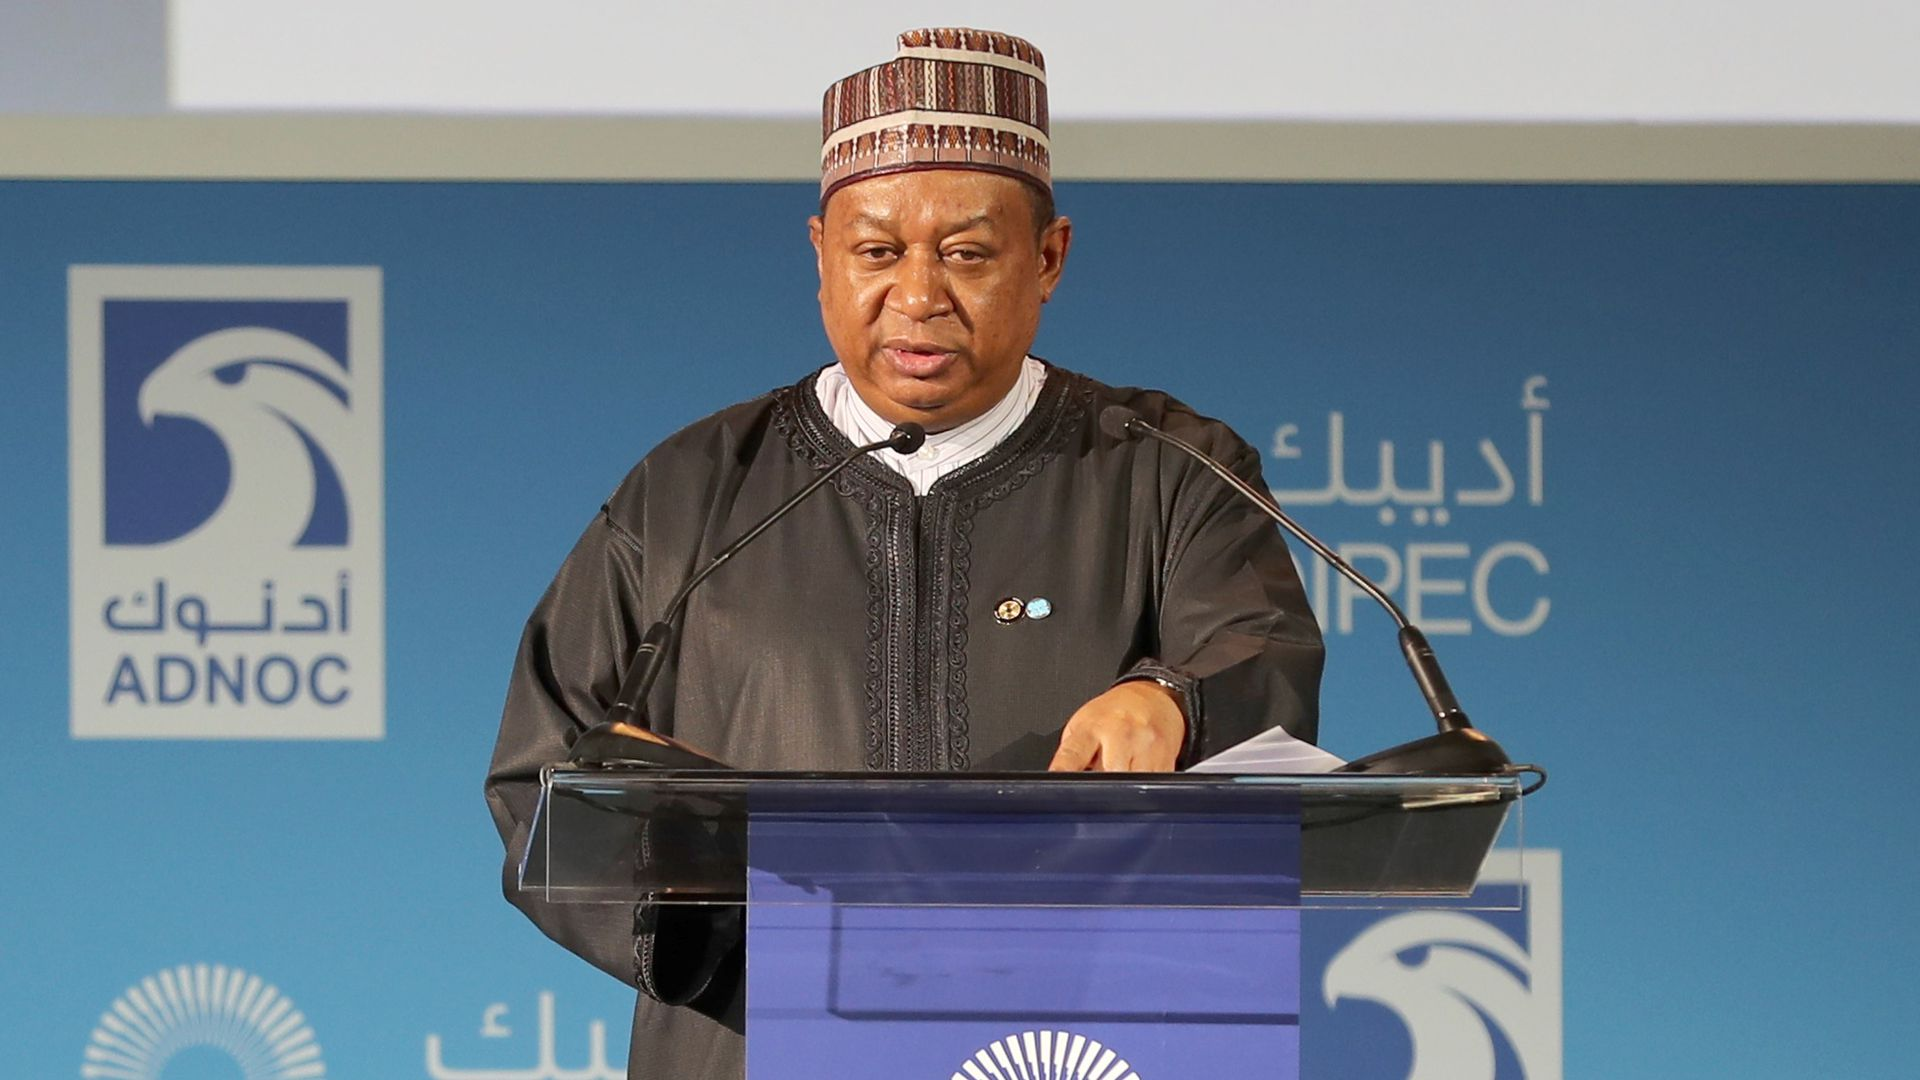 Mohammed Barkindo speaking from a lectern